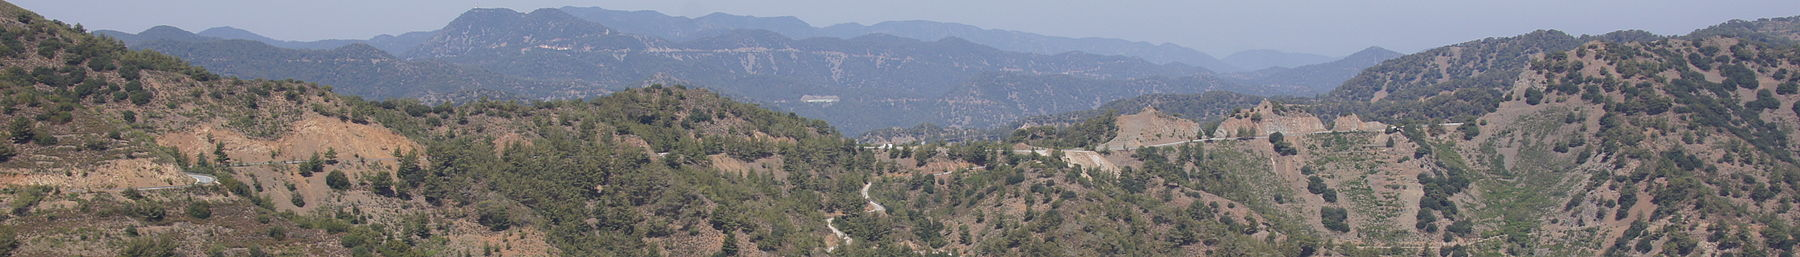 Troodos Mountains, Cyprus banner.jpg